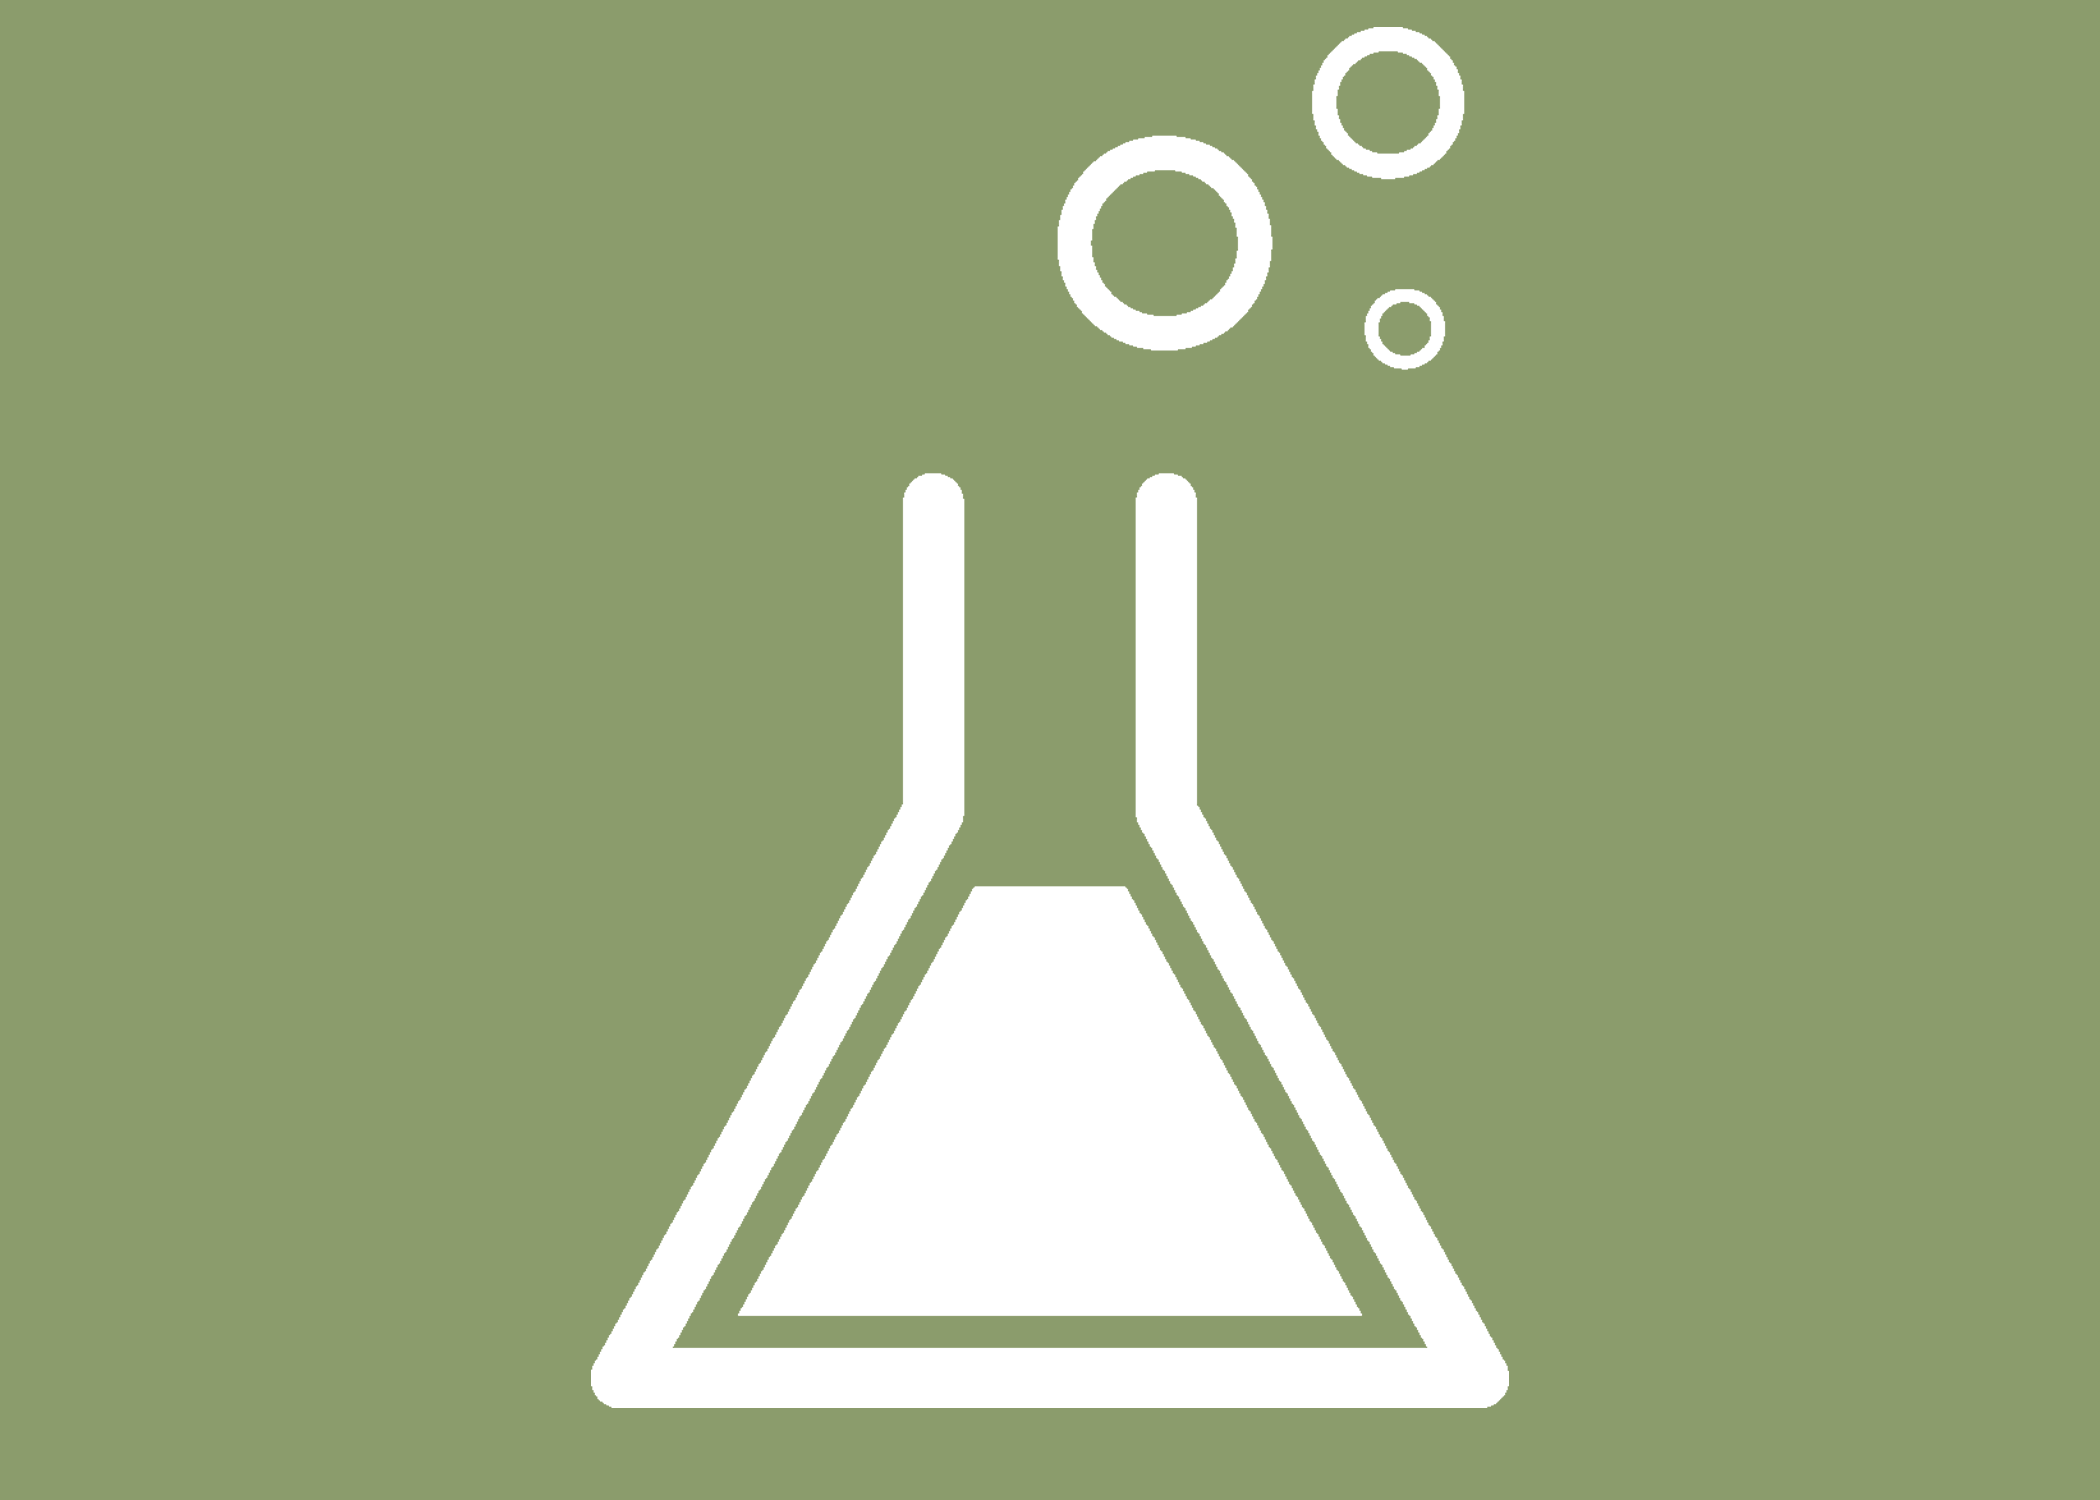 Chemical and Lab Safety - Environmental Health